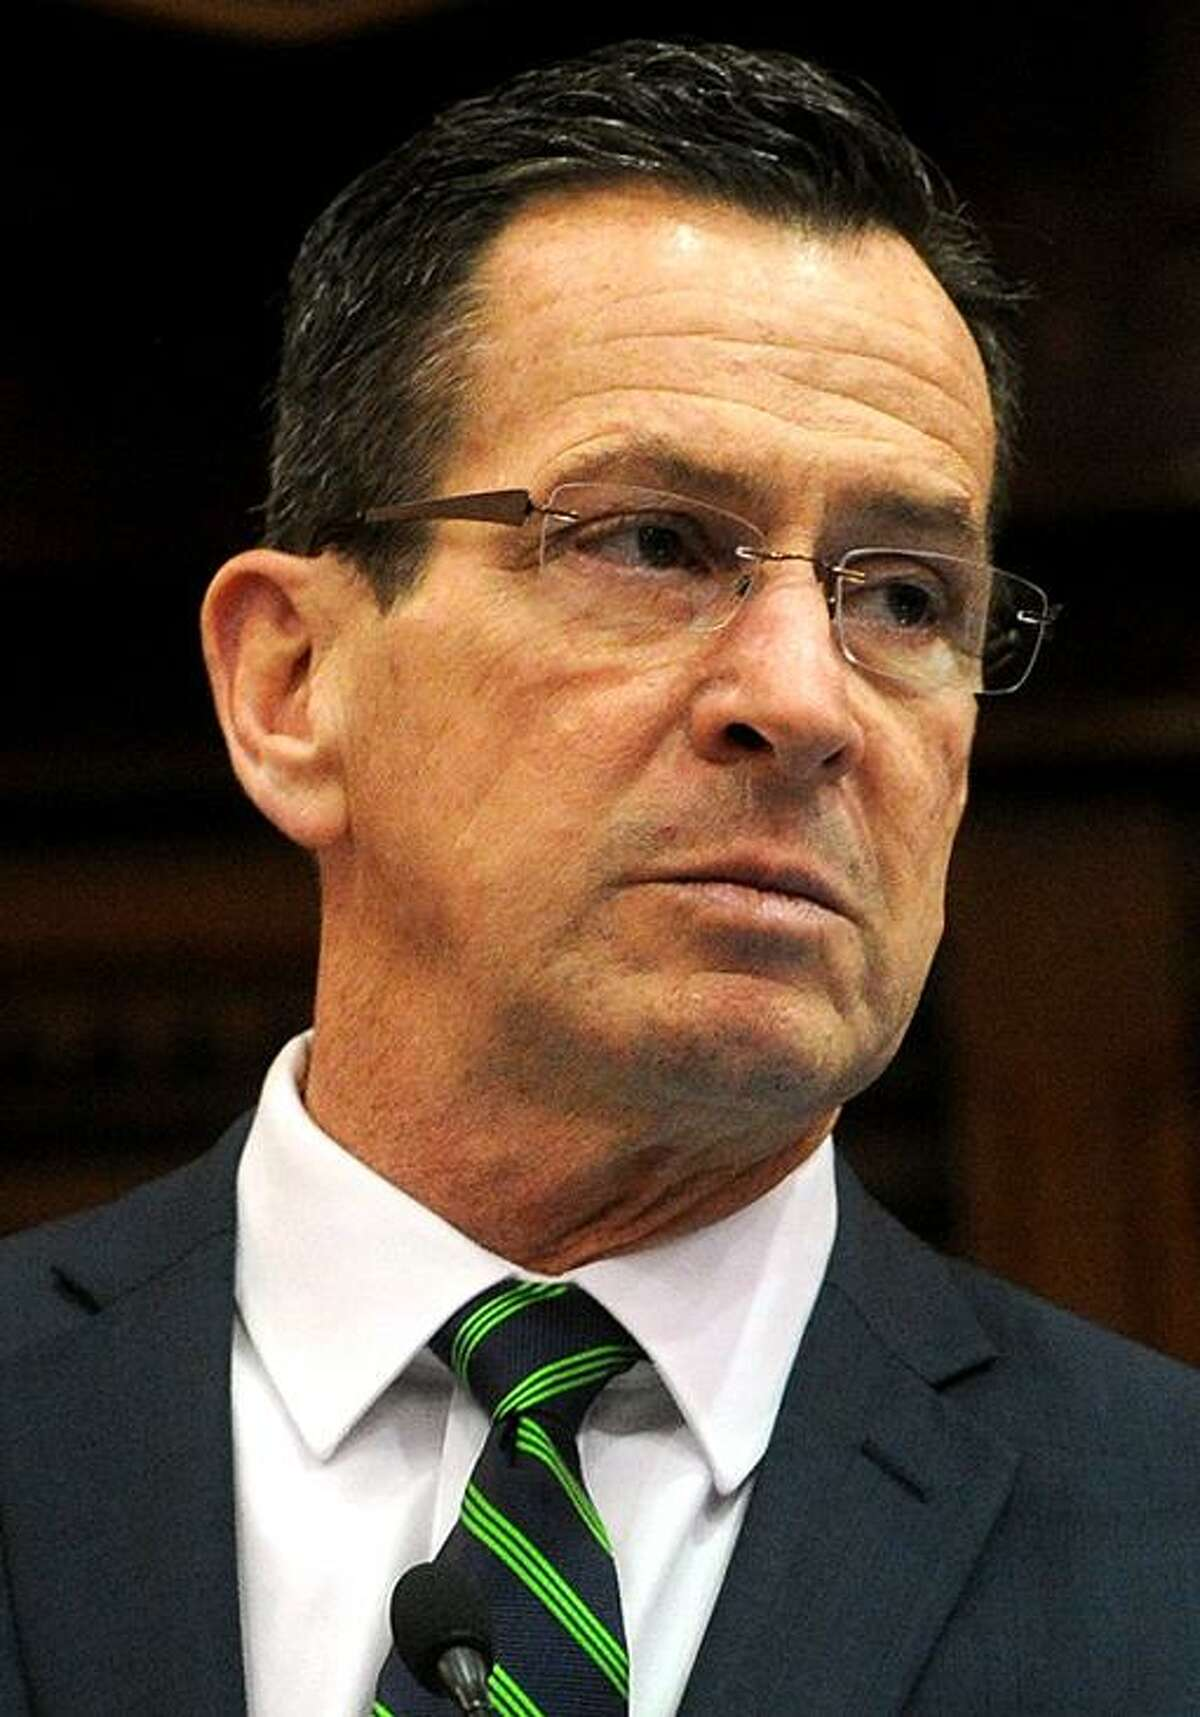 Since November, Gov. Dannel P. Malloy's administration has been involved in informal talks in attempt to gain $1.5-billion in concessions to state employees. A tentative agreement has been reached.